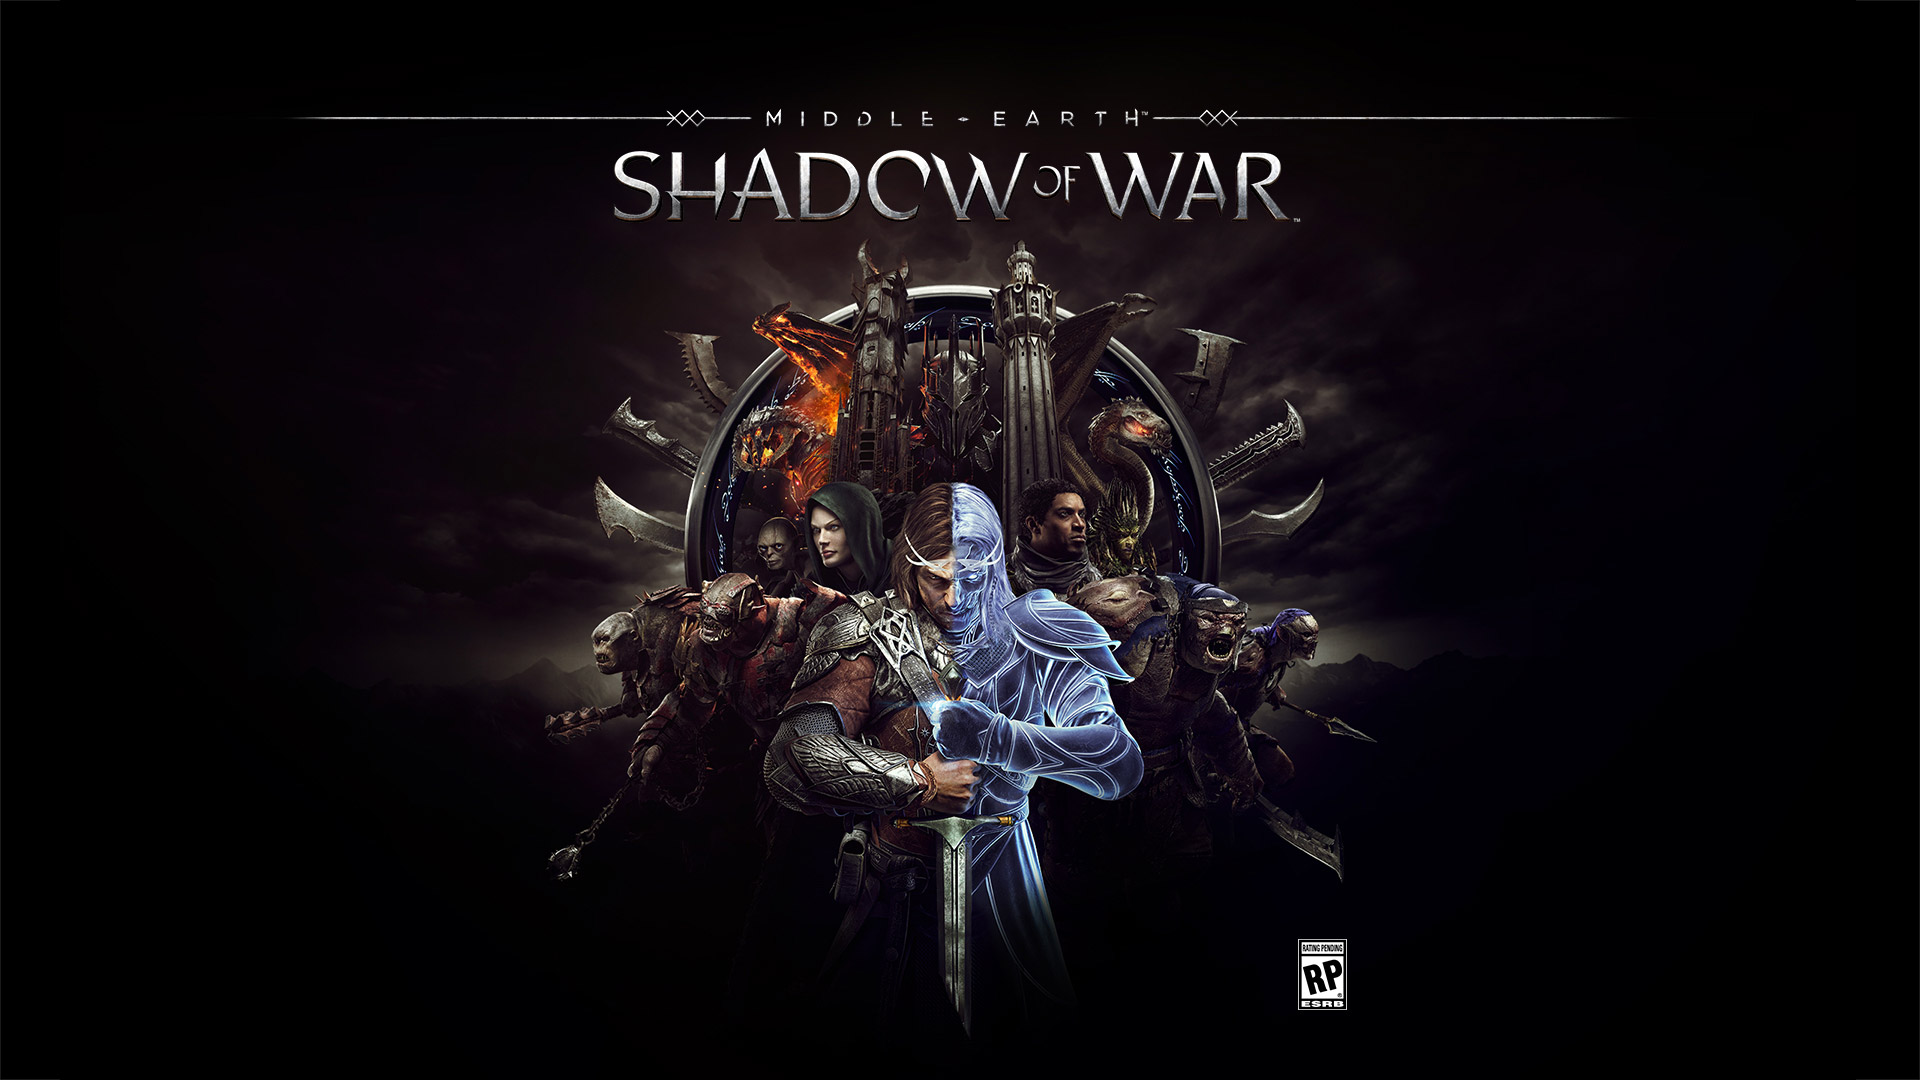 Free Middle-earth: Shadow of War Wallpaper in 1920x1080